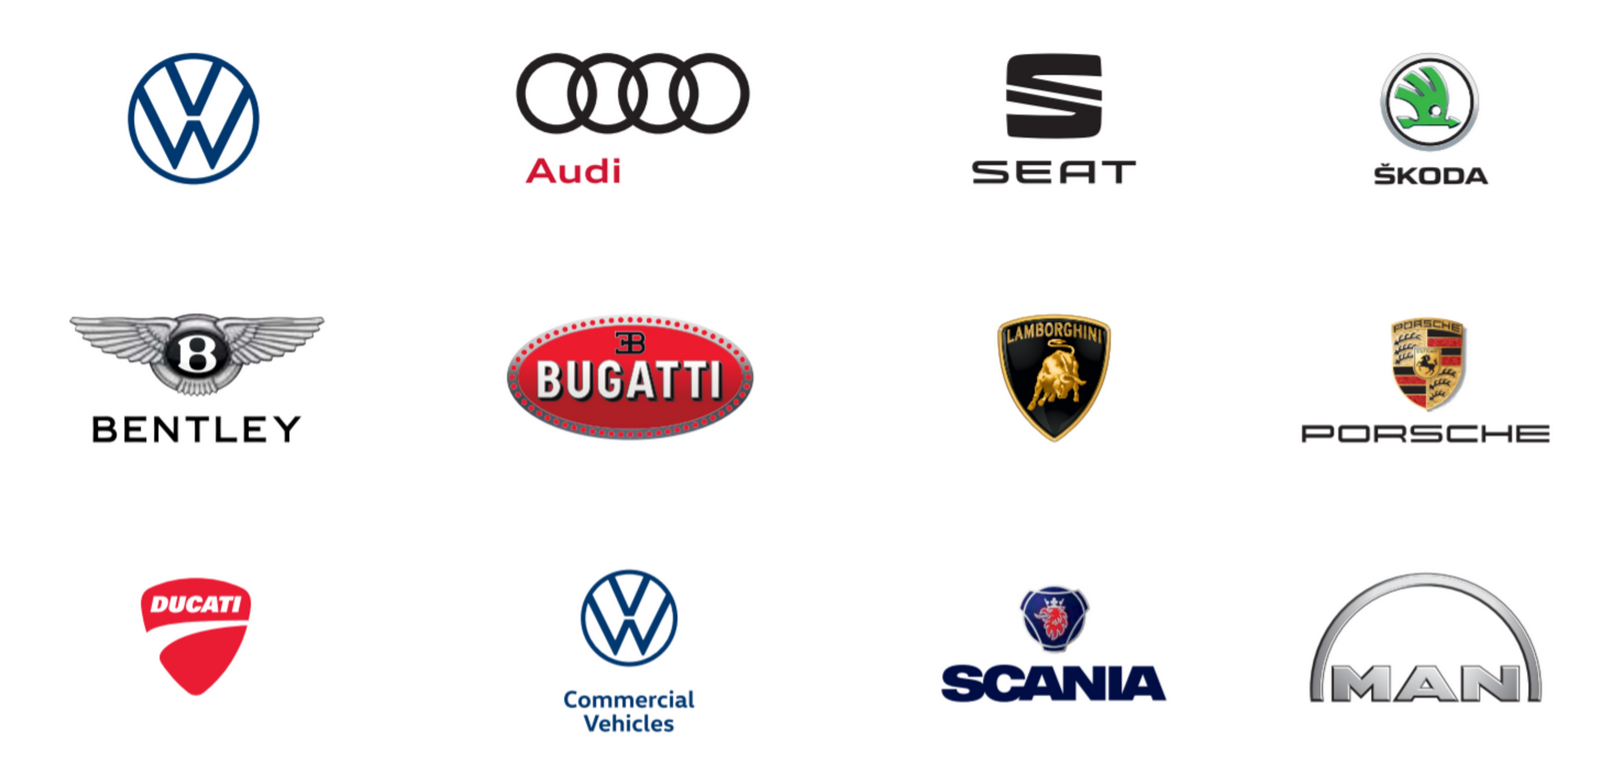 10 Things you did not know about Volkswagen - Sheet5